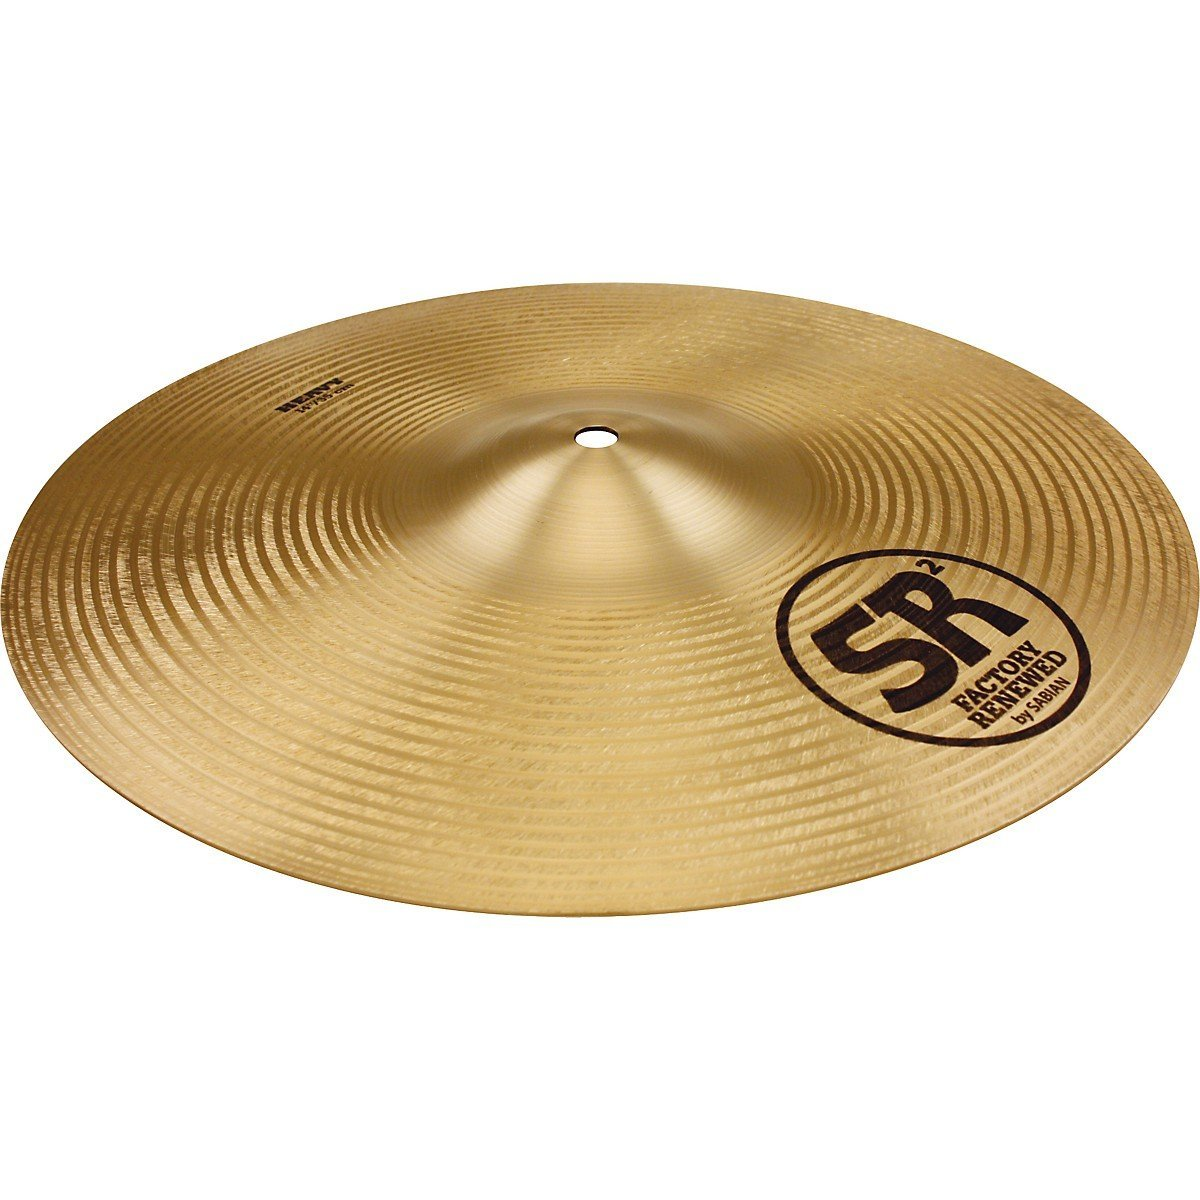 Sabian SR2 Thin Splash Cymbal 10 in. by Sabian